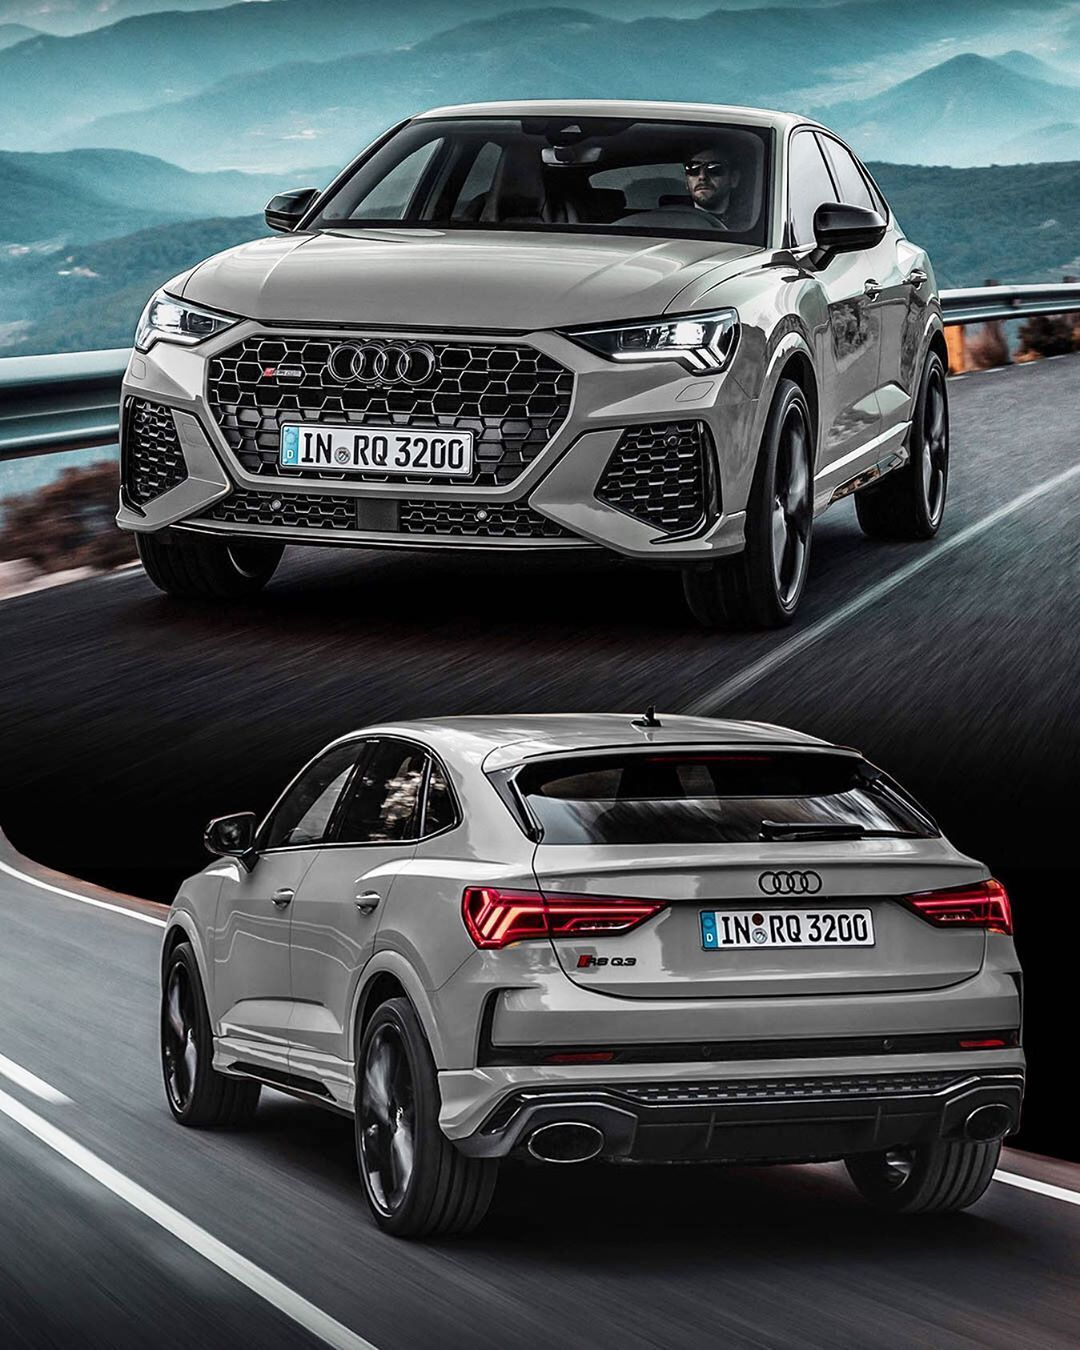 Seat Belt Mounted On Instagram Rsq3 Sportback Did Another Edit This Time In Nardo Grey What Do You Think About It In 2020 Audi Rsq3 Audi Q3 Audi